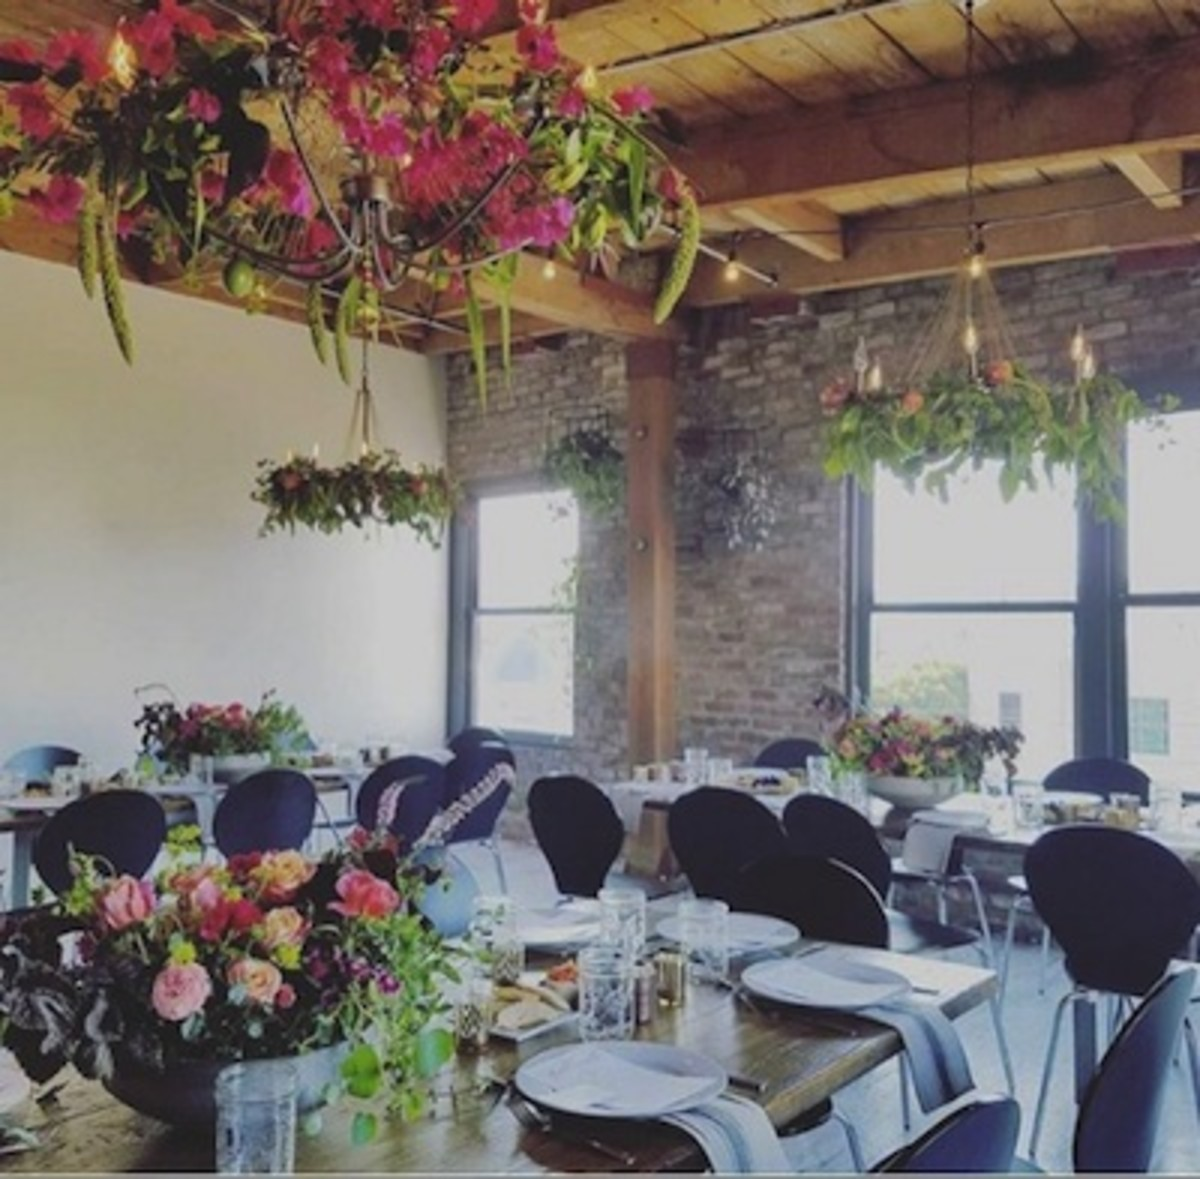 Meal setting for floral dining experience